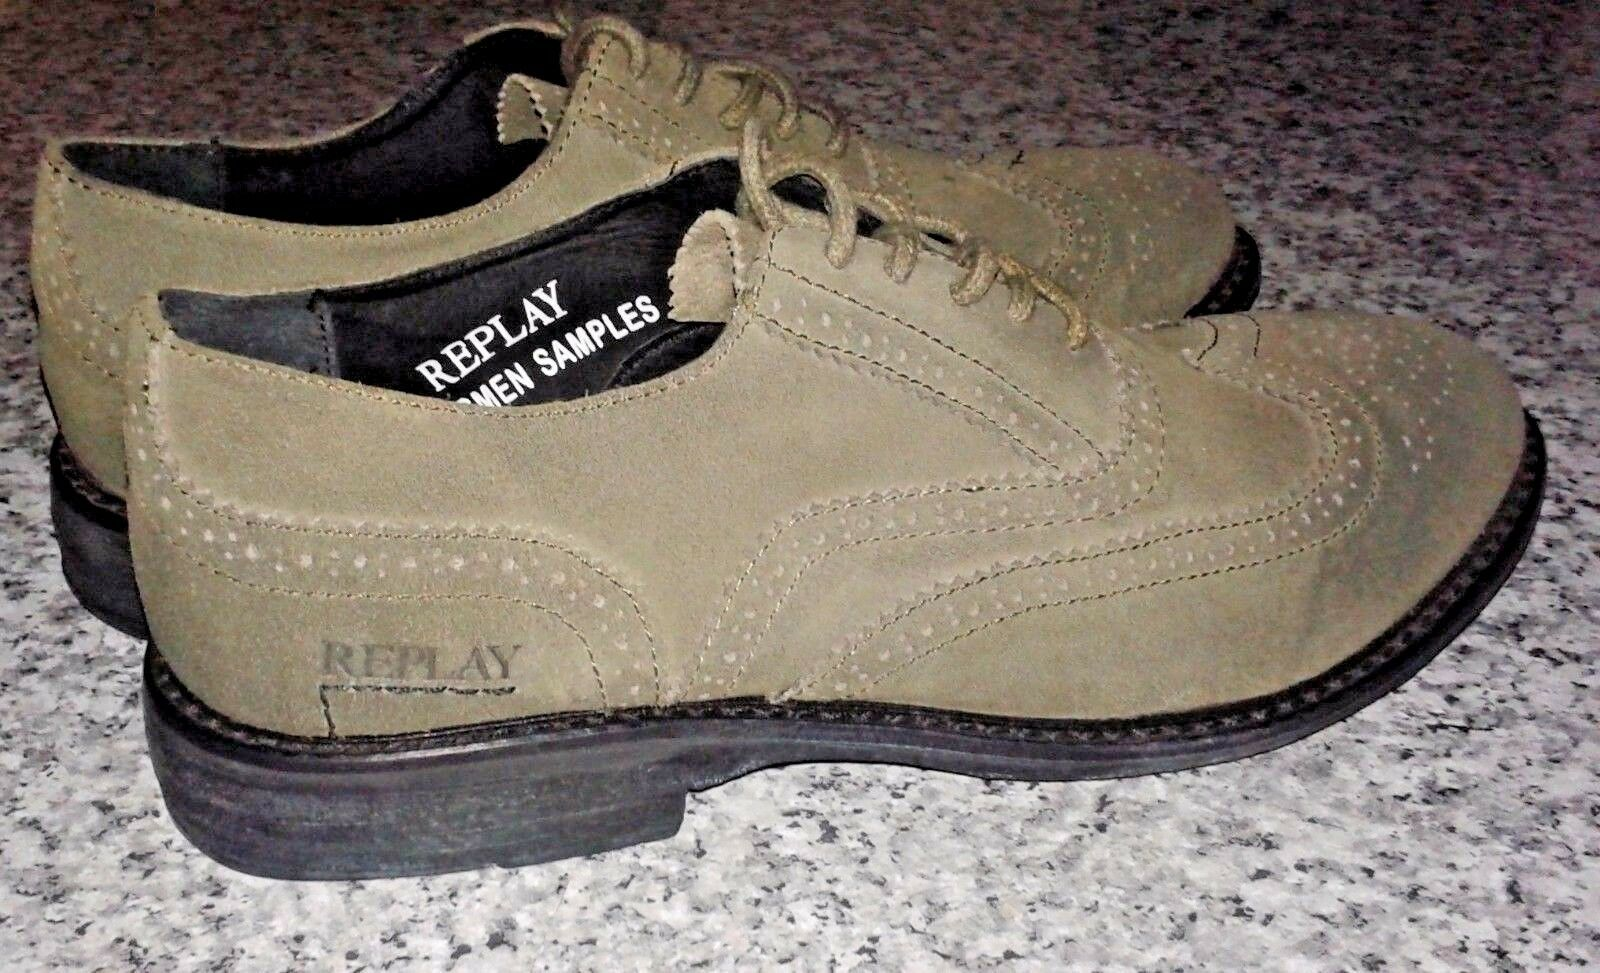 REPLAY Salesmen Samples Smart Leather Casual Work Fashion Brogue schuhe - UK 8